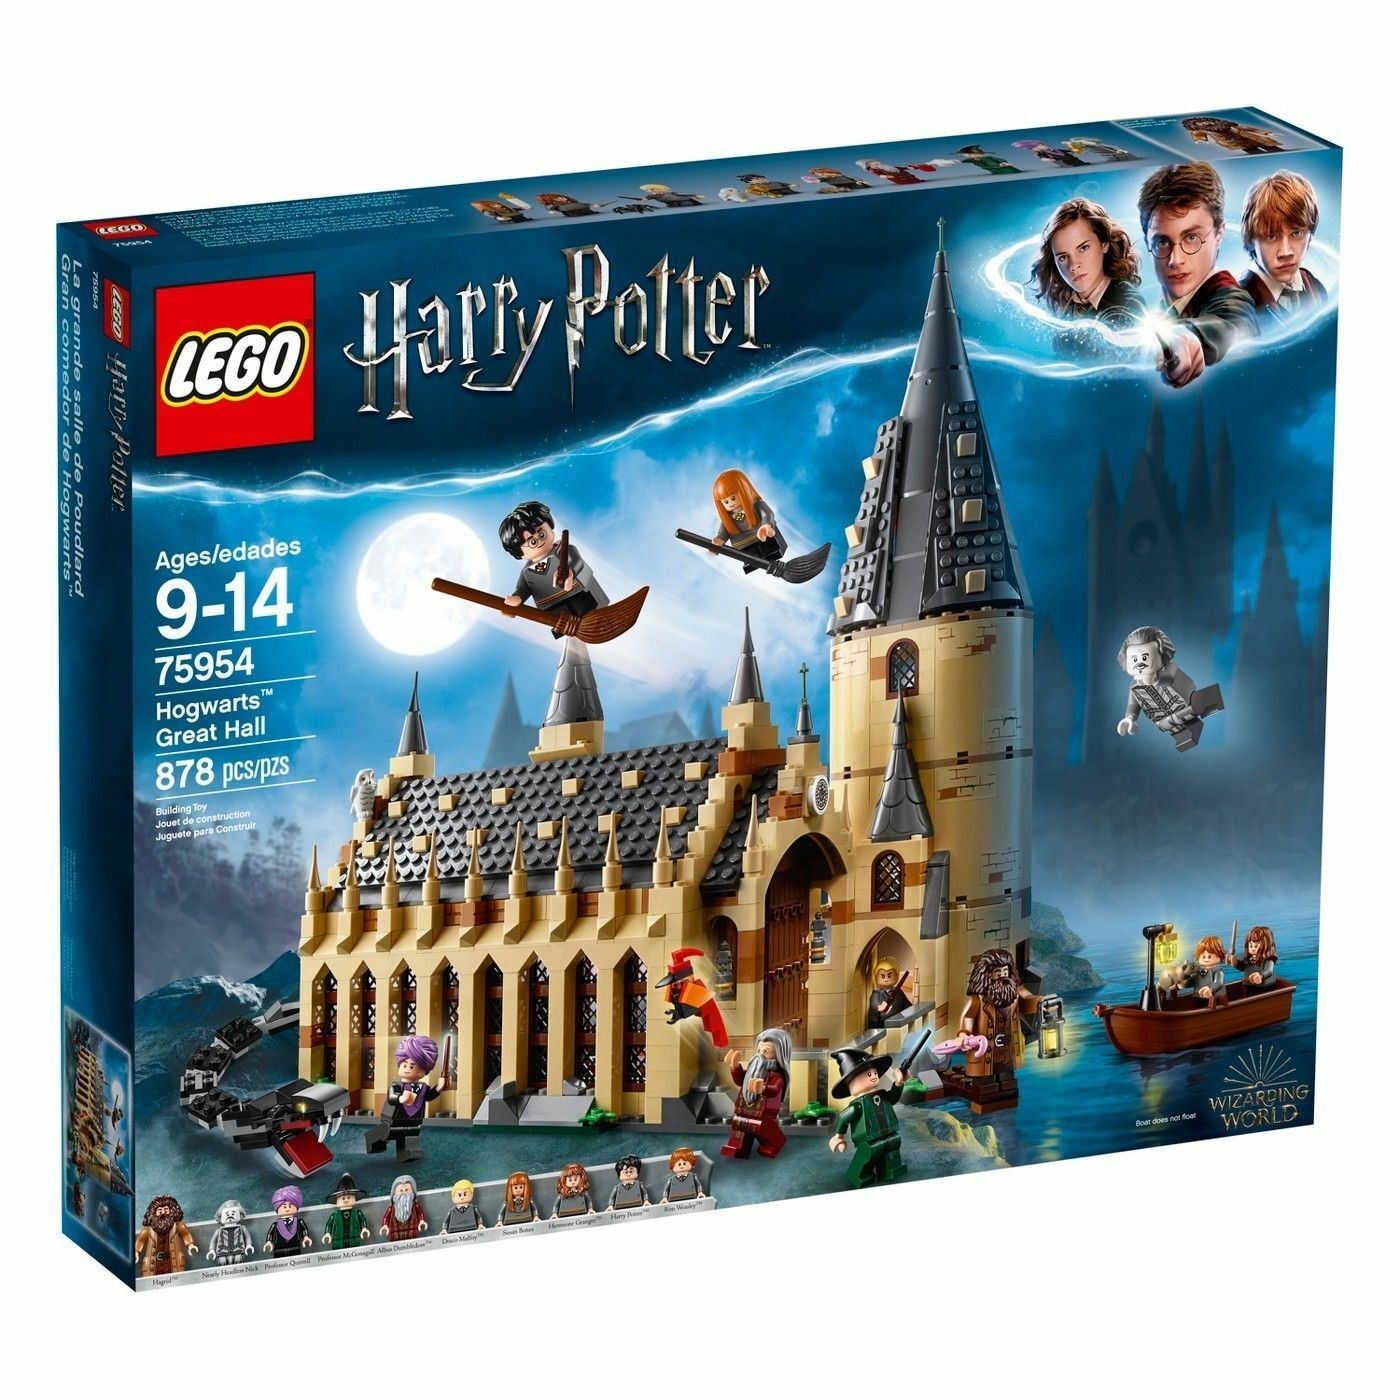 LEGO Harry Potter Hogwarts Great Hall 75954 75954 75954 Wizarding World 2018 878 pieces efad31